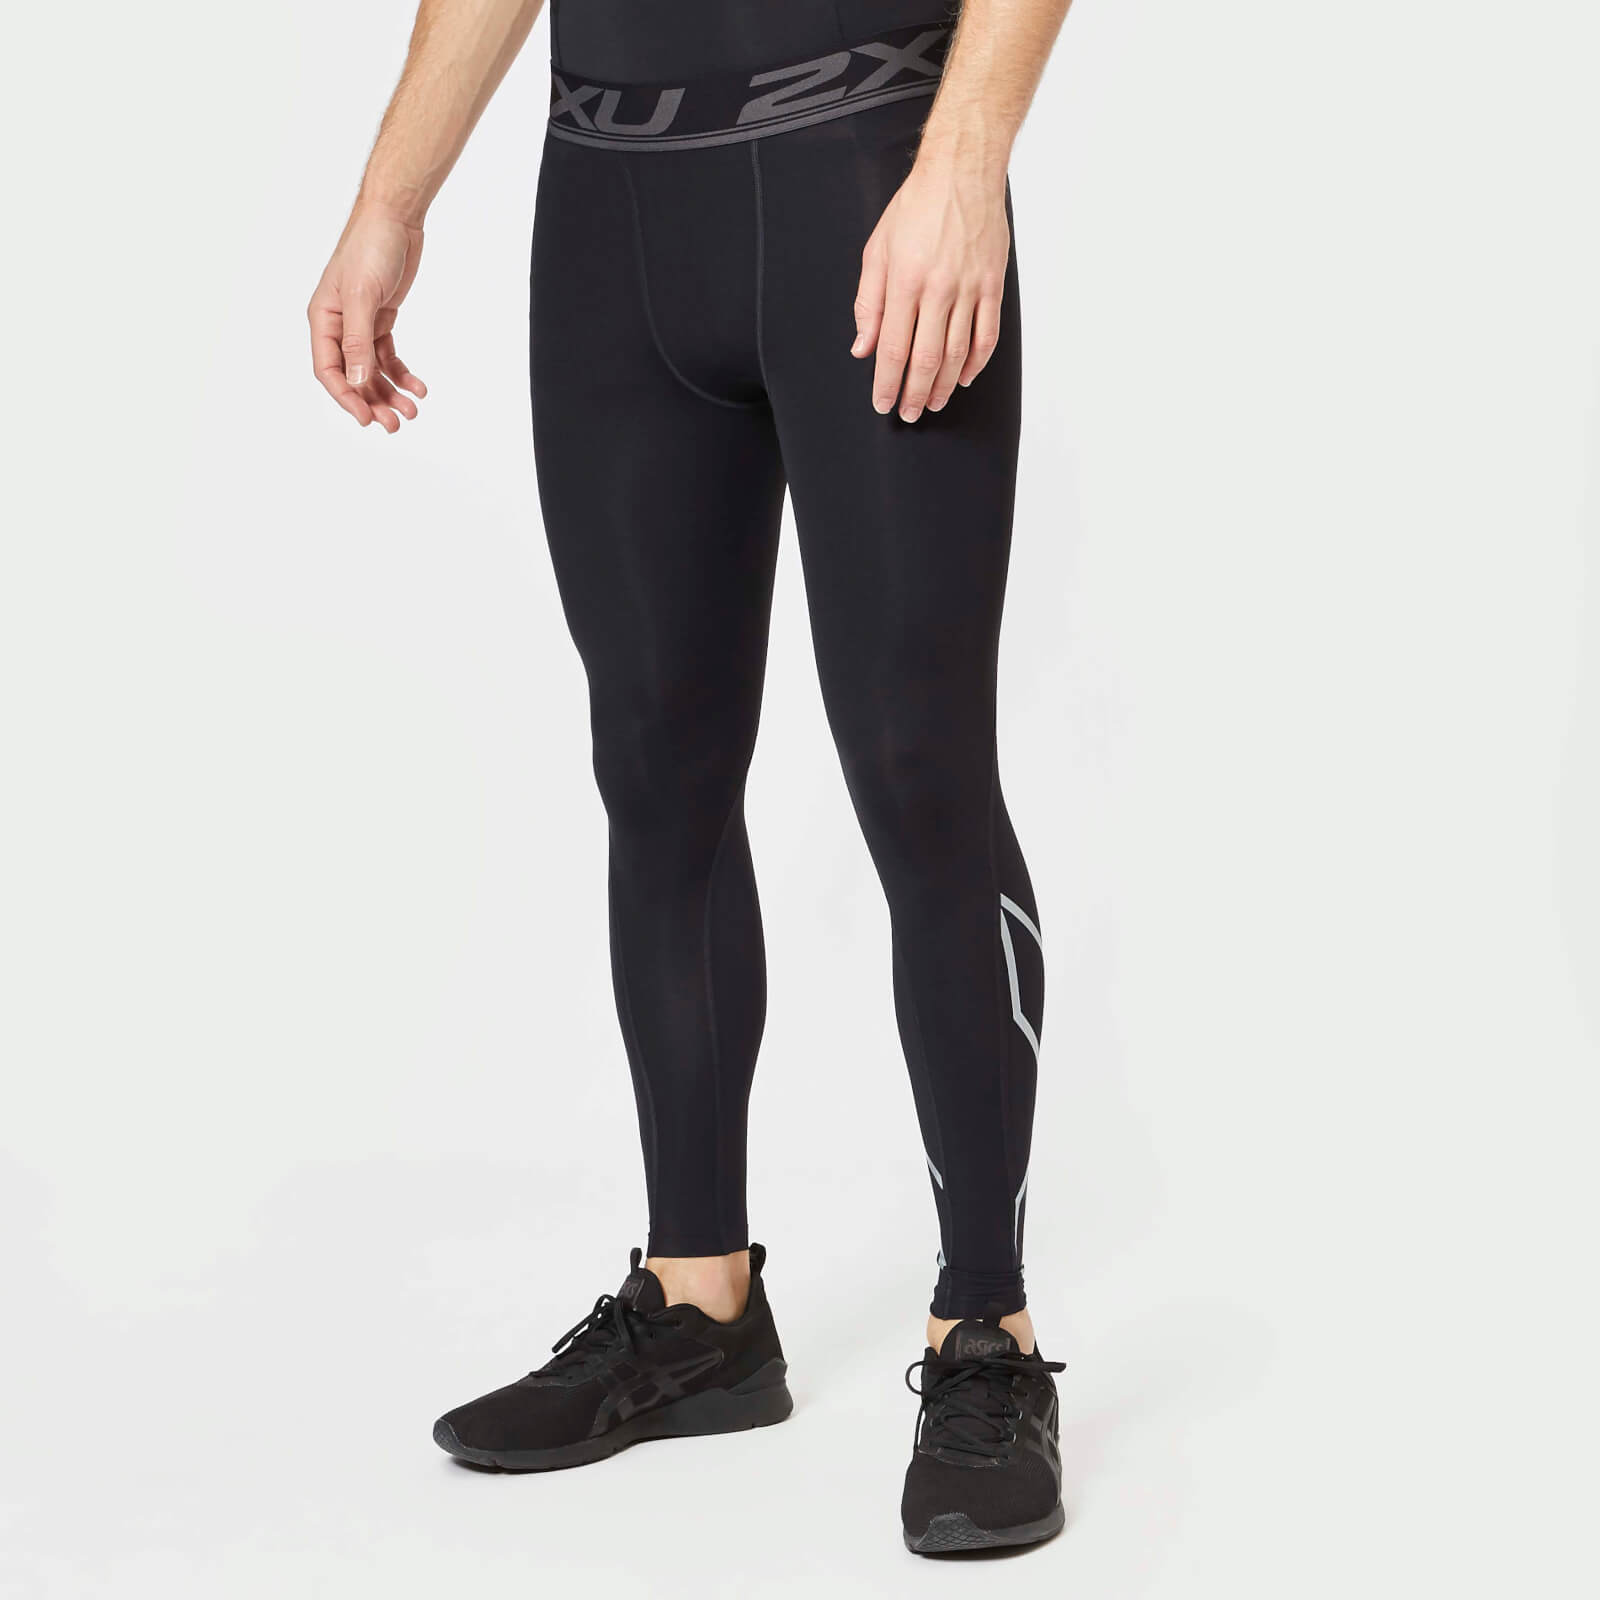 f29d6b5bcc 2XU Men's Accelerate Compression Tights - Black/Silver - Free UK Delivery  over £50